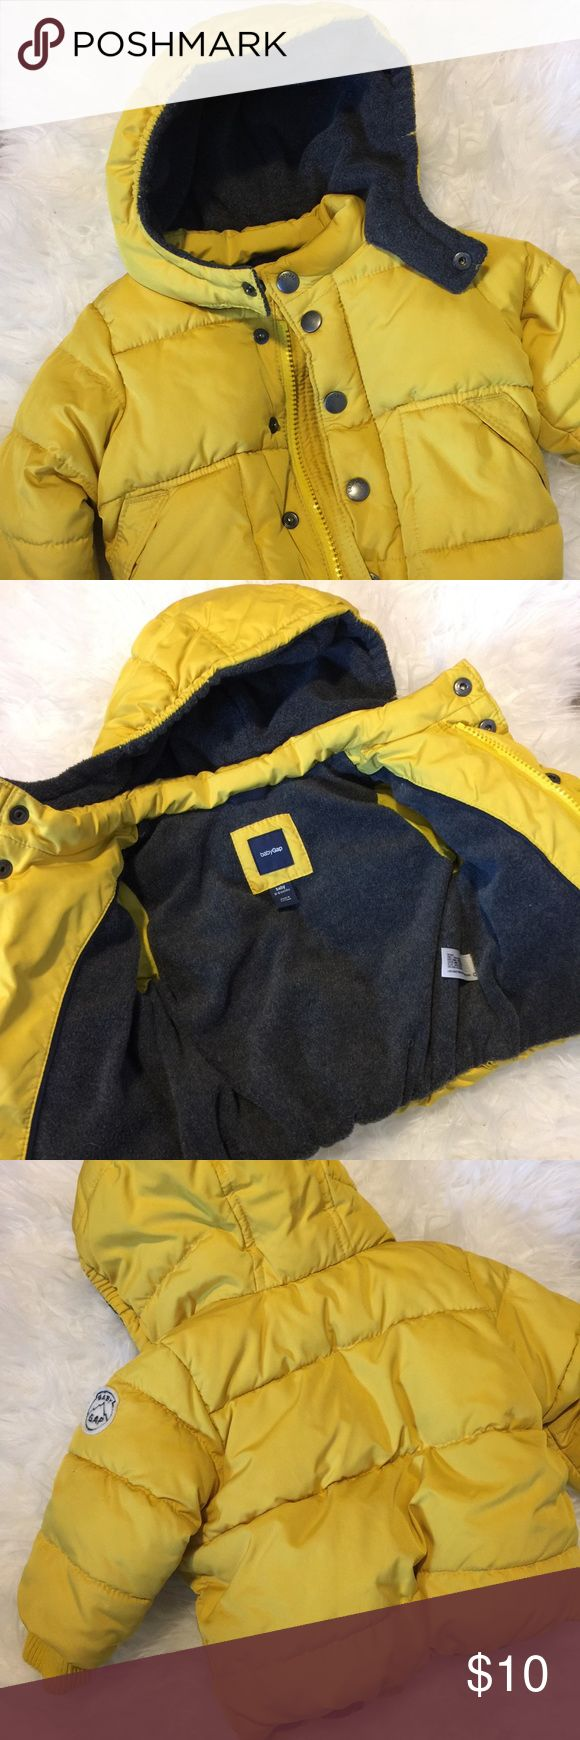 Baby Gap Jacket Size 0-6 months Baby Gap Jacket Size 0-6 months in yellow. GAP Jackets & Coats Puffers